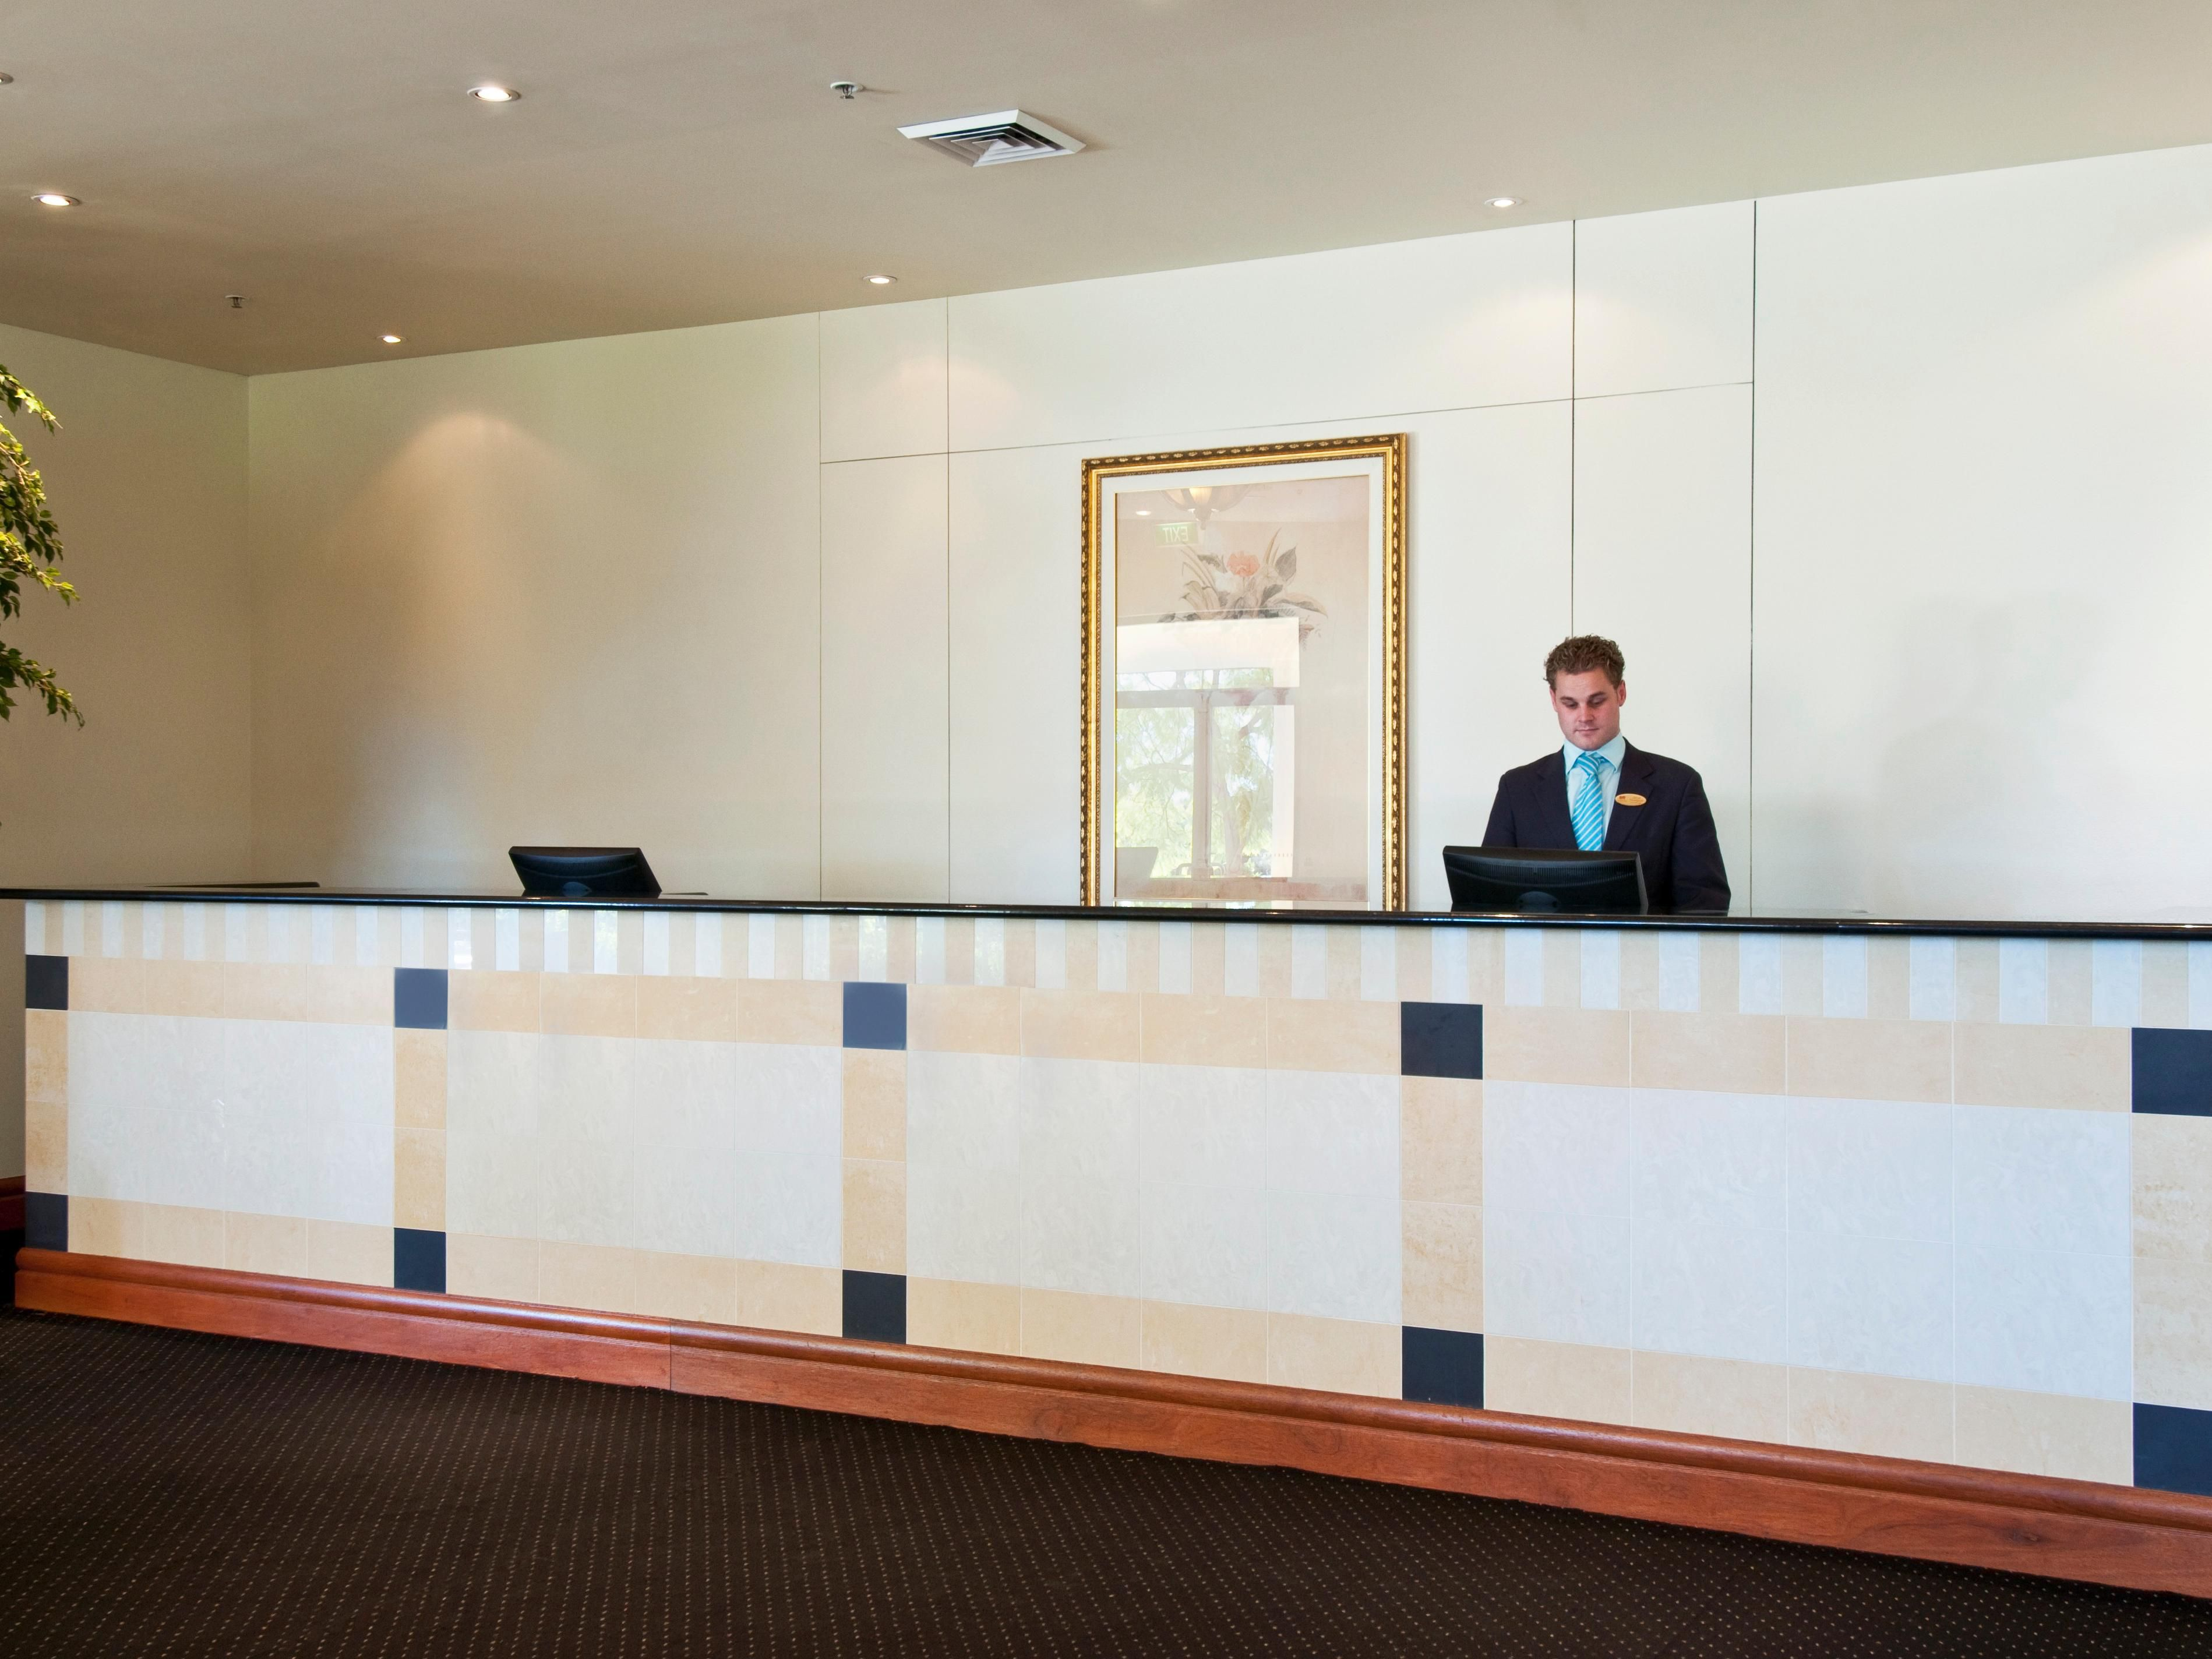 Crowne Plaza Norwest Reception